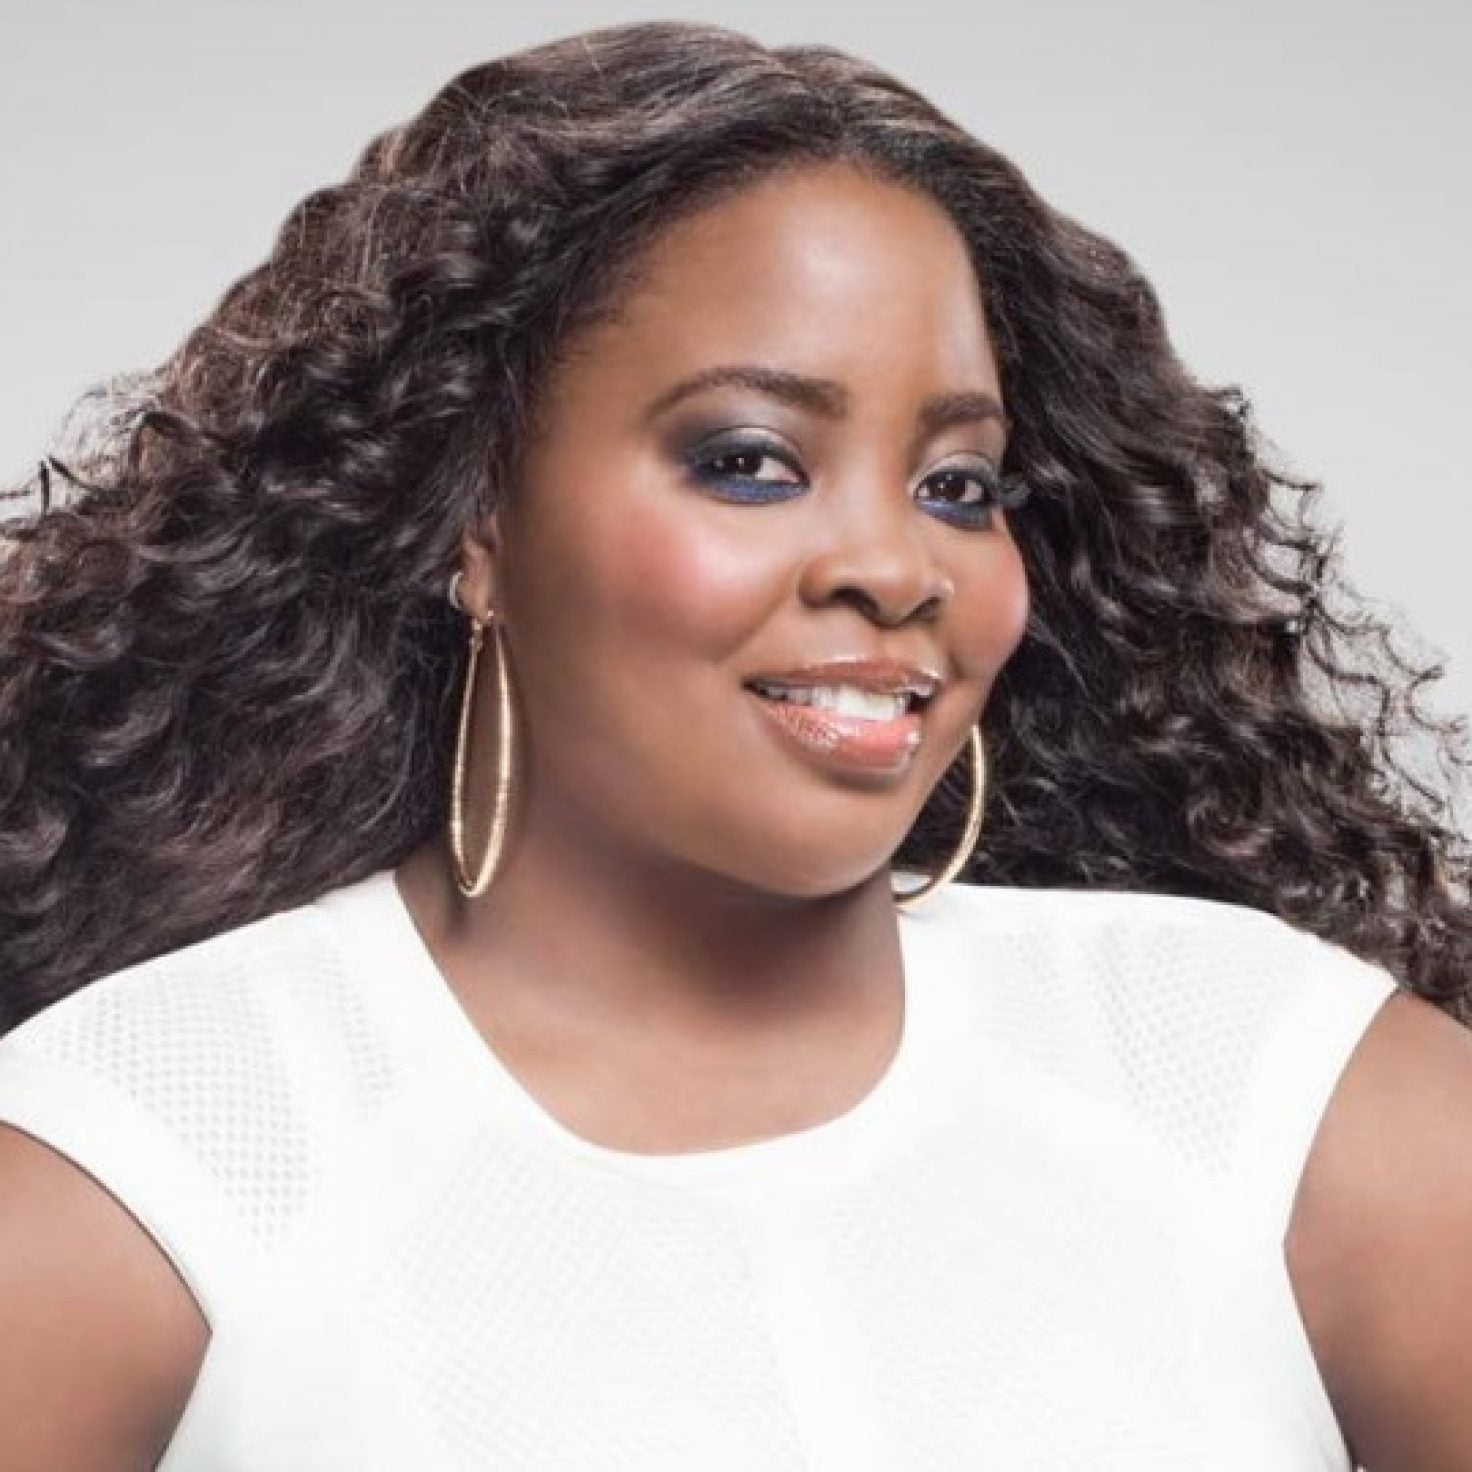 Kim Kimble Haircare Proves That Effective Entrepreneurship Serves A Need